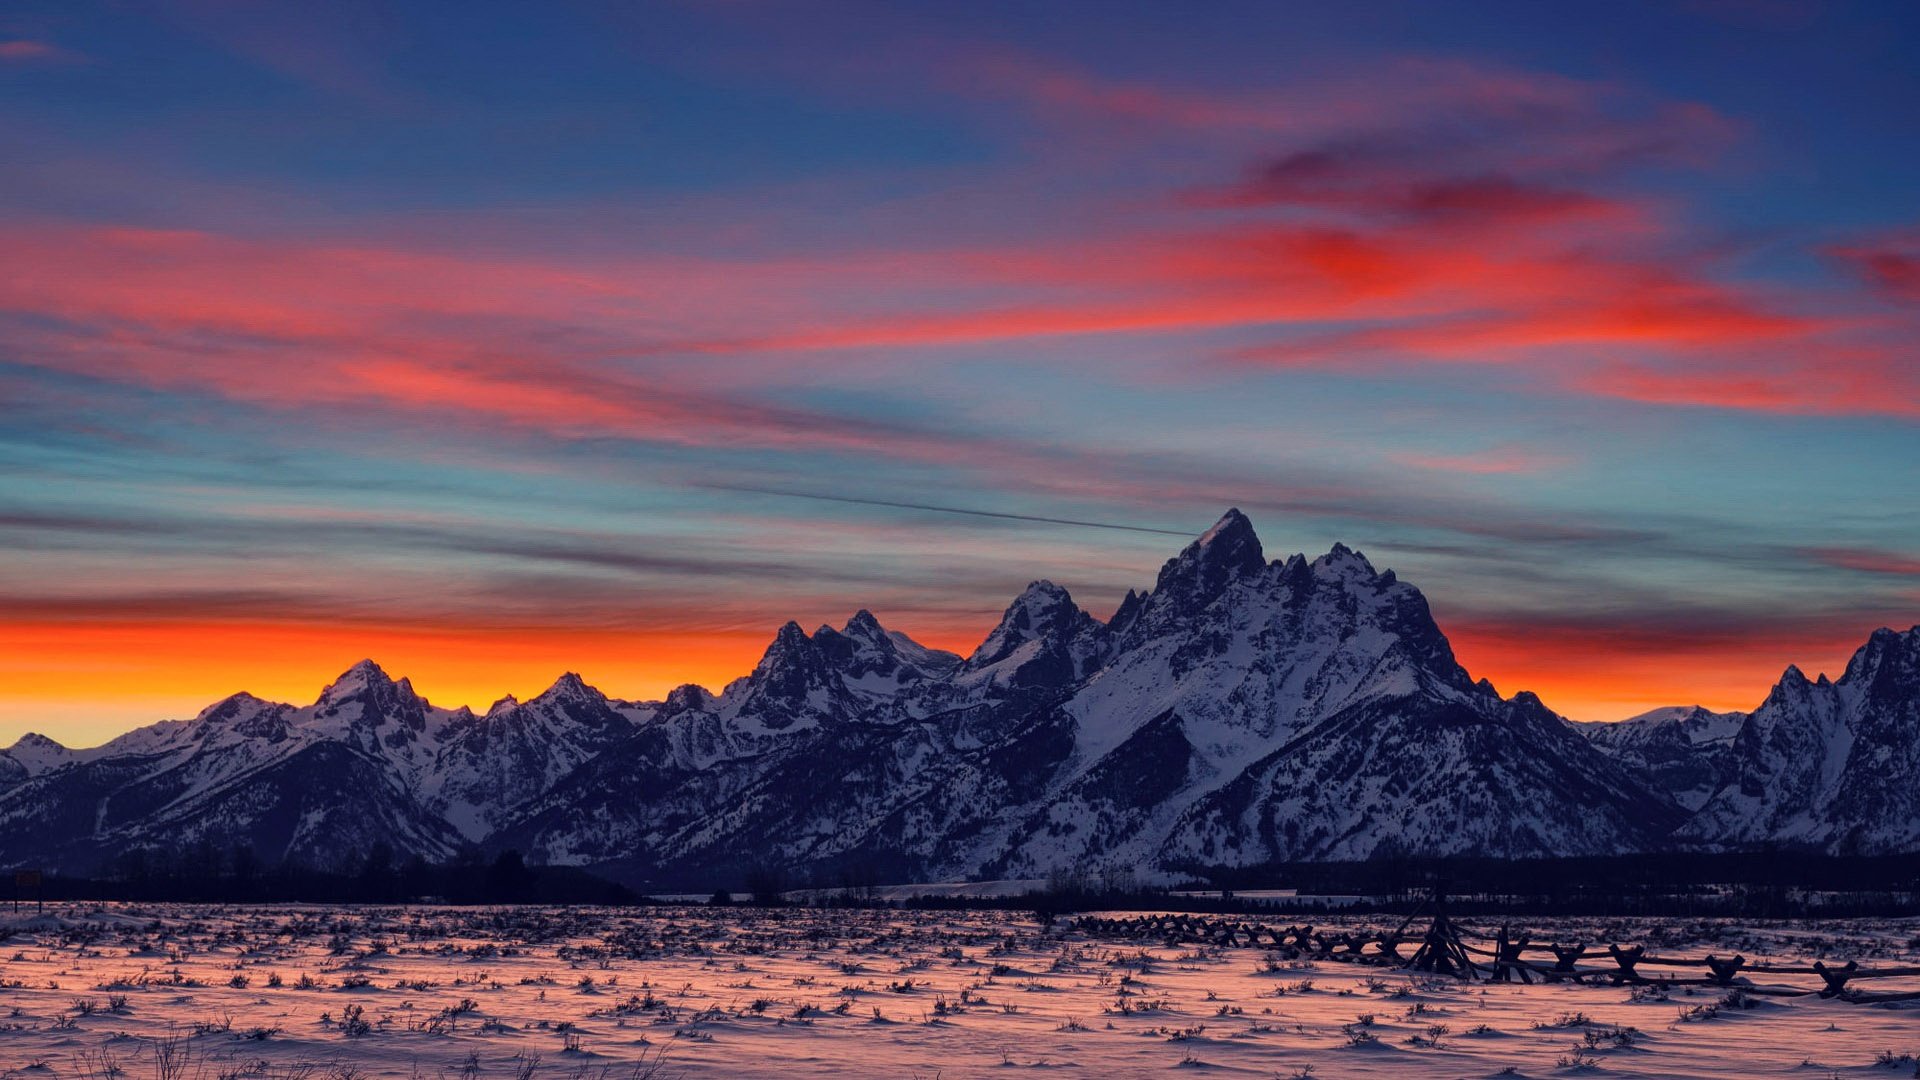 Sunset In The Mountains Wallpapers High Quality Download Free